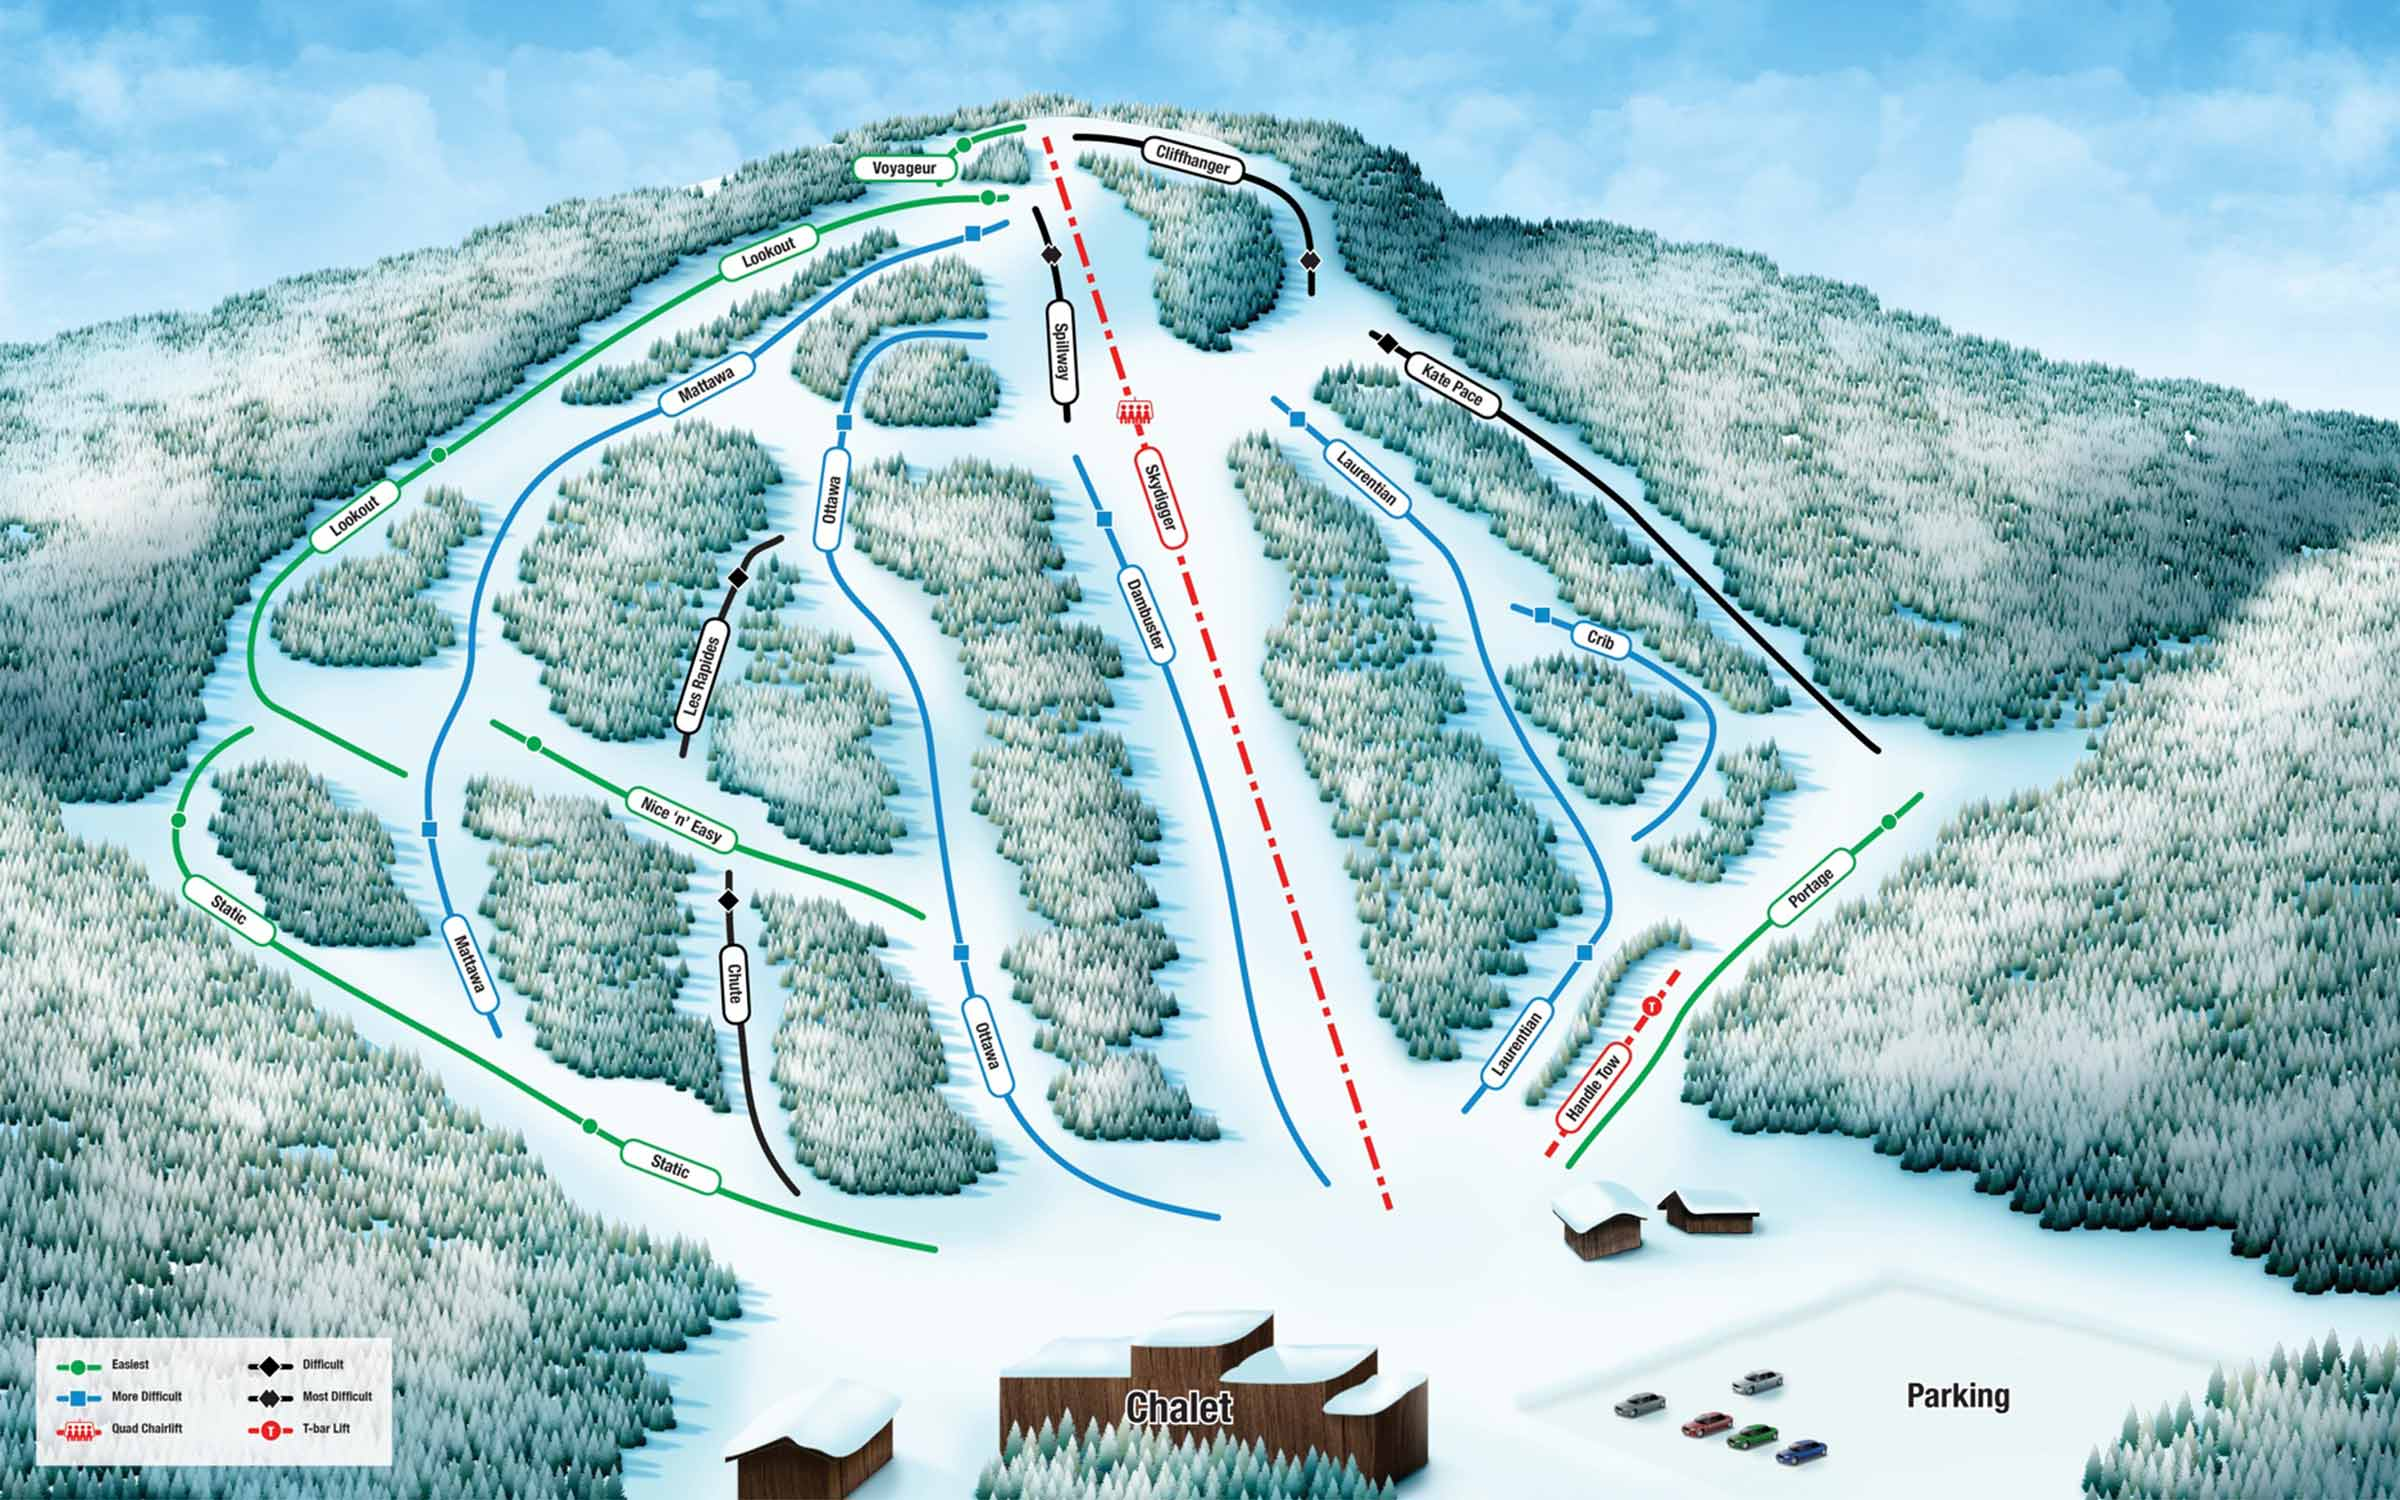 Antoine Mountain map of runs. Contact us for more details.